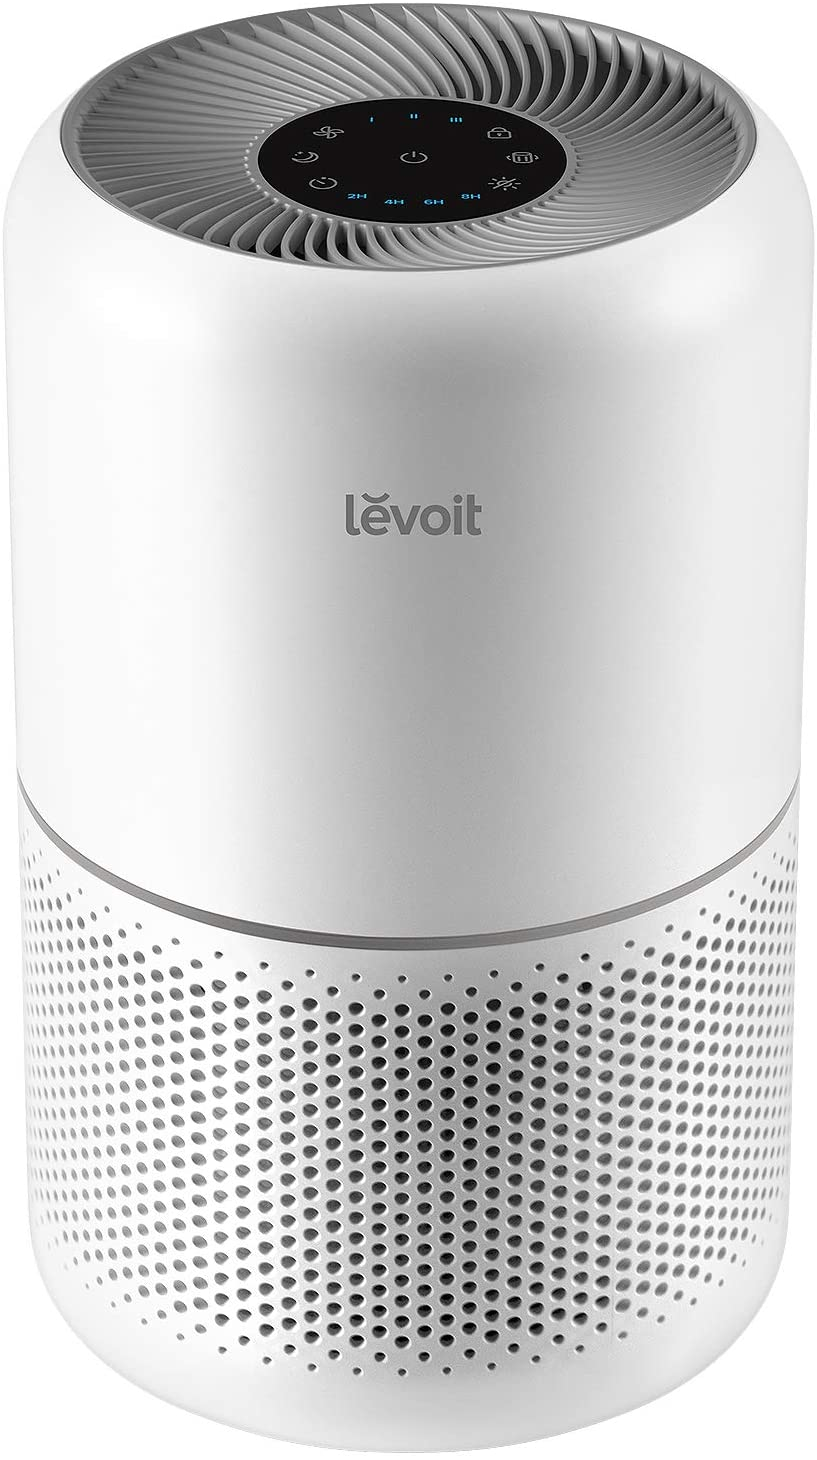 Levolt True Hepa Air Purifier - My Simple Changes